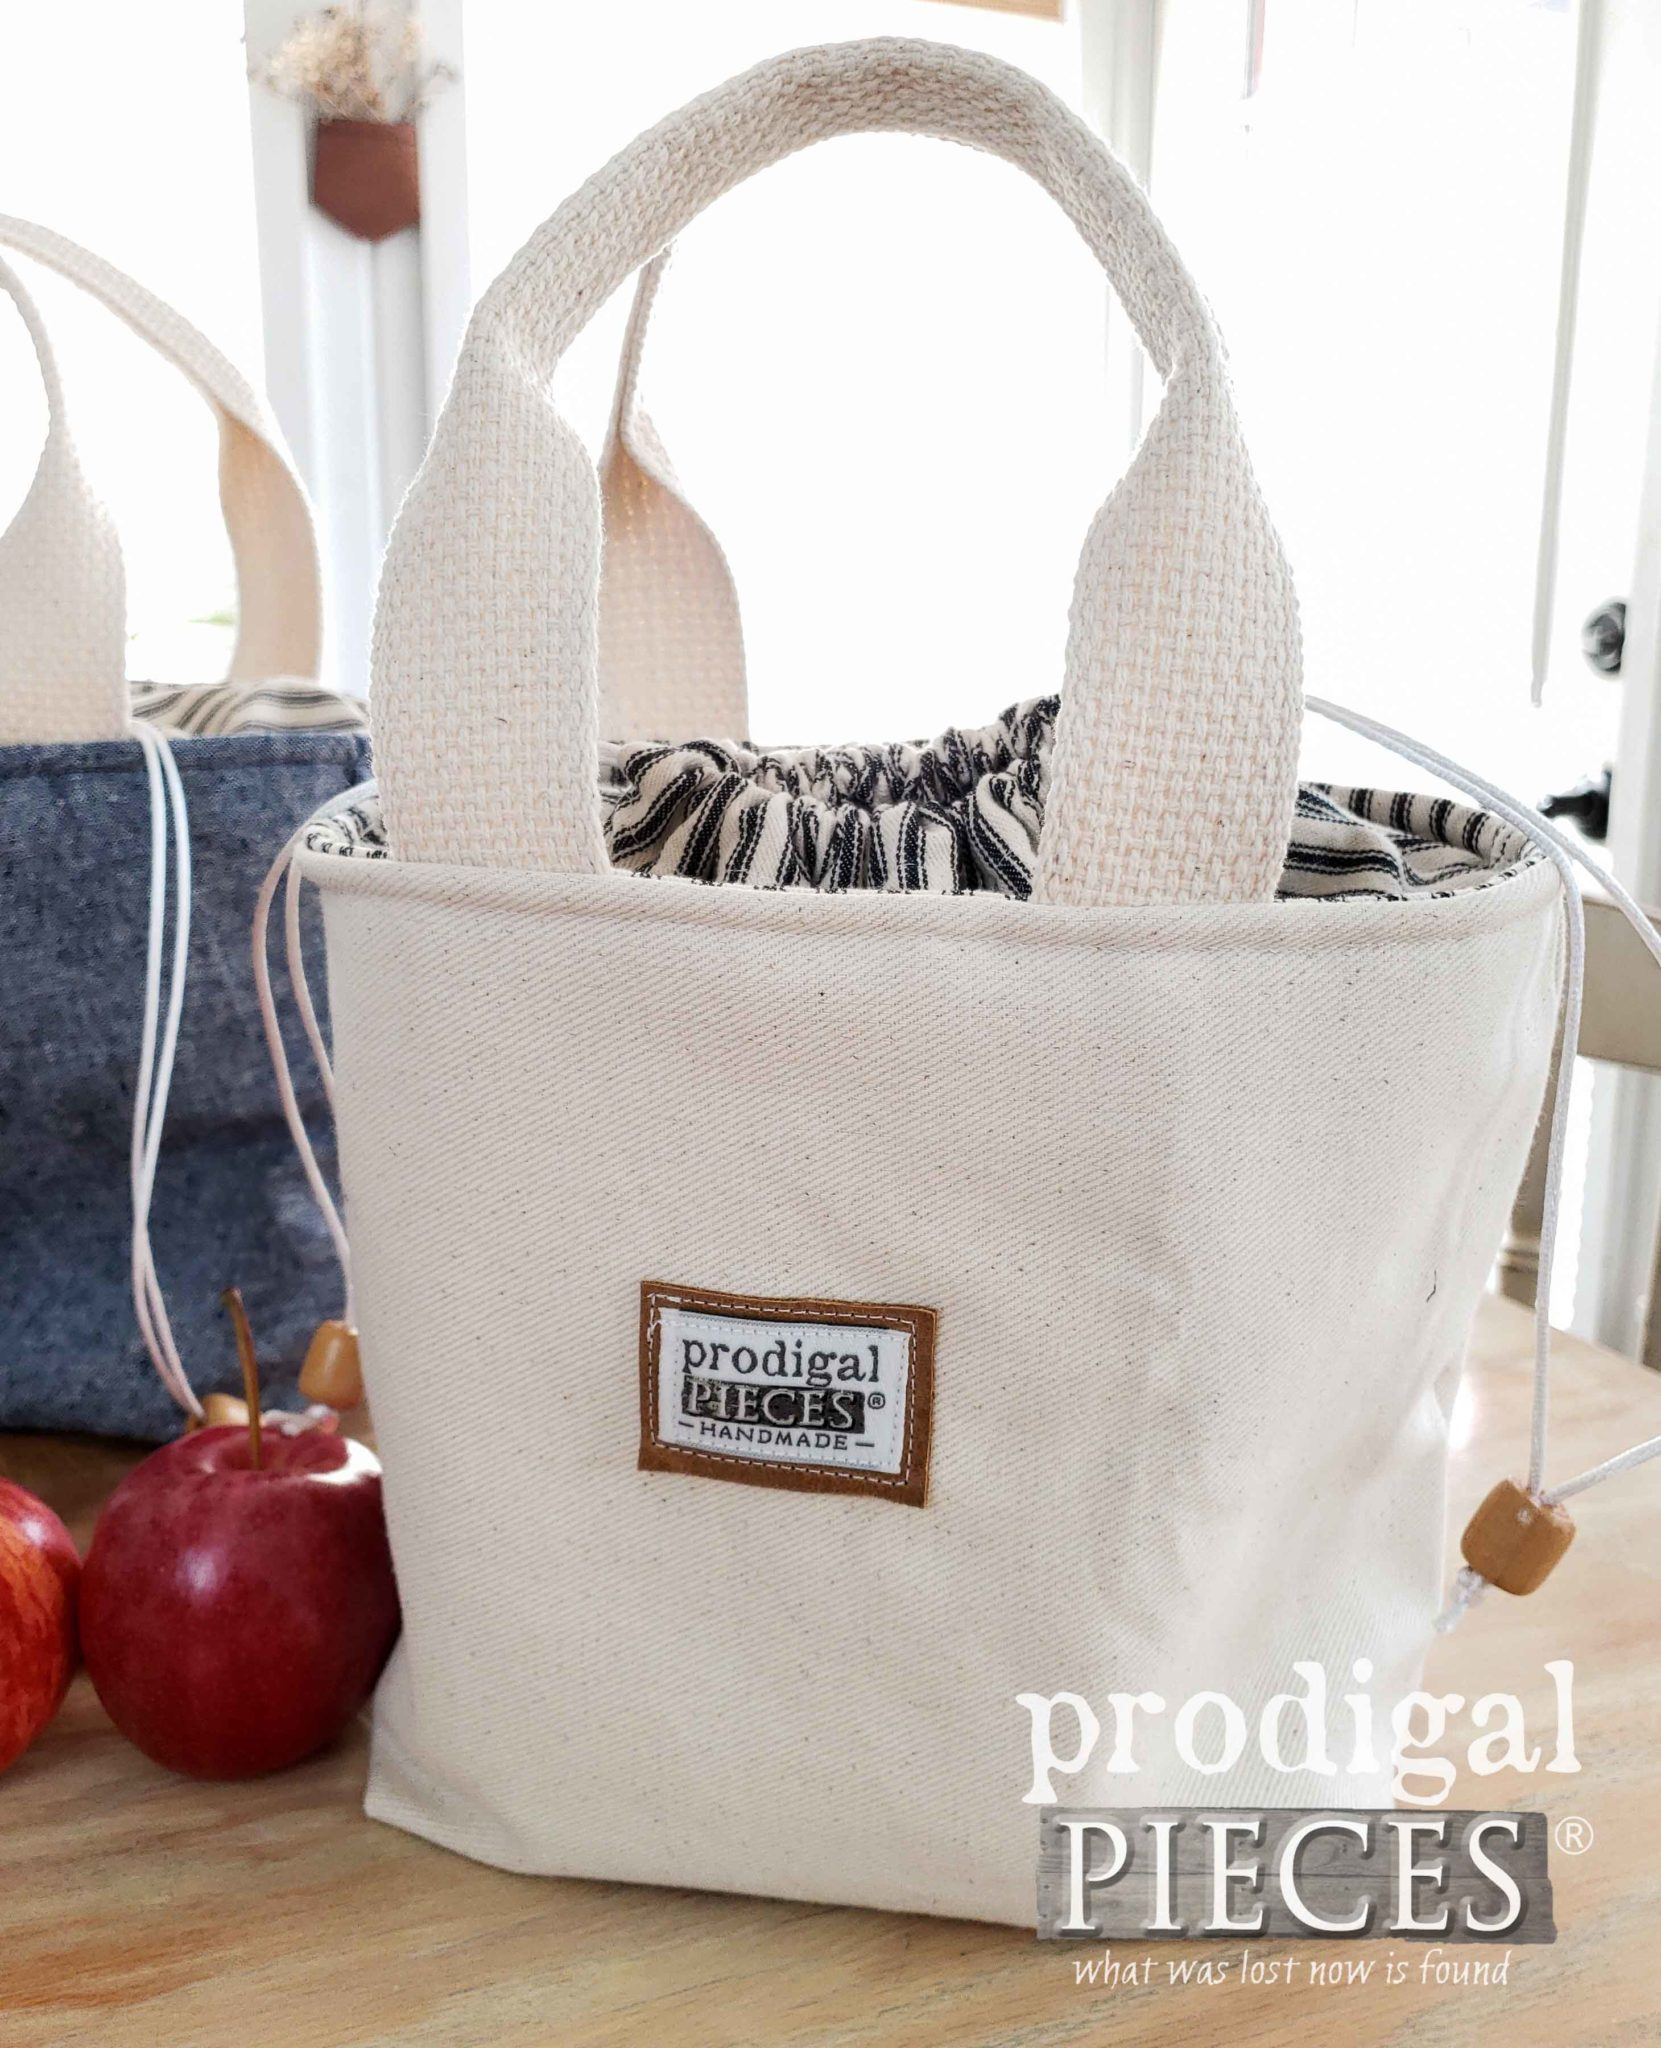 Twill and Ticking Stripe Insulated Lunch Bag by Larissa of Prodigal Pieces | prodigalpieces.com #prodigalpieces #home #handmade #sewing #diy #fashion